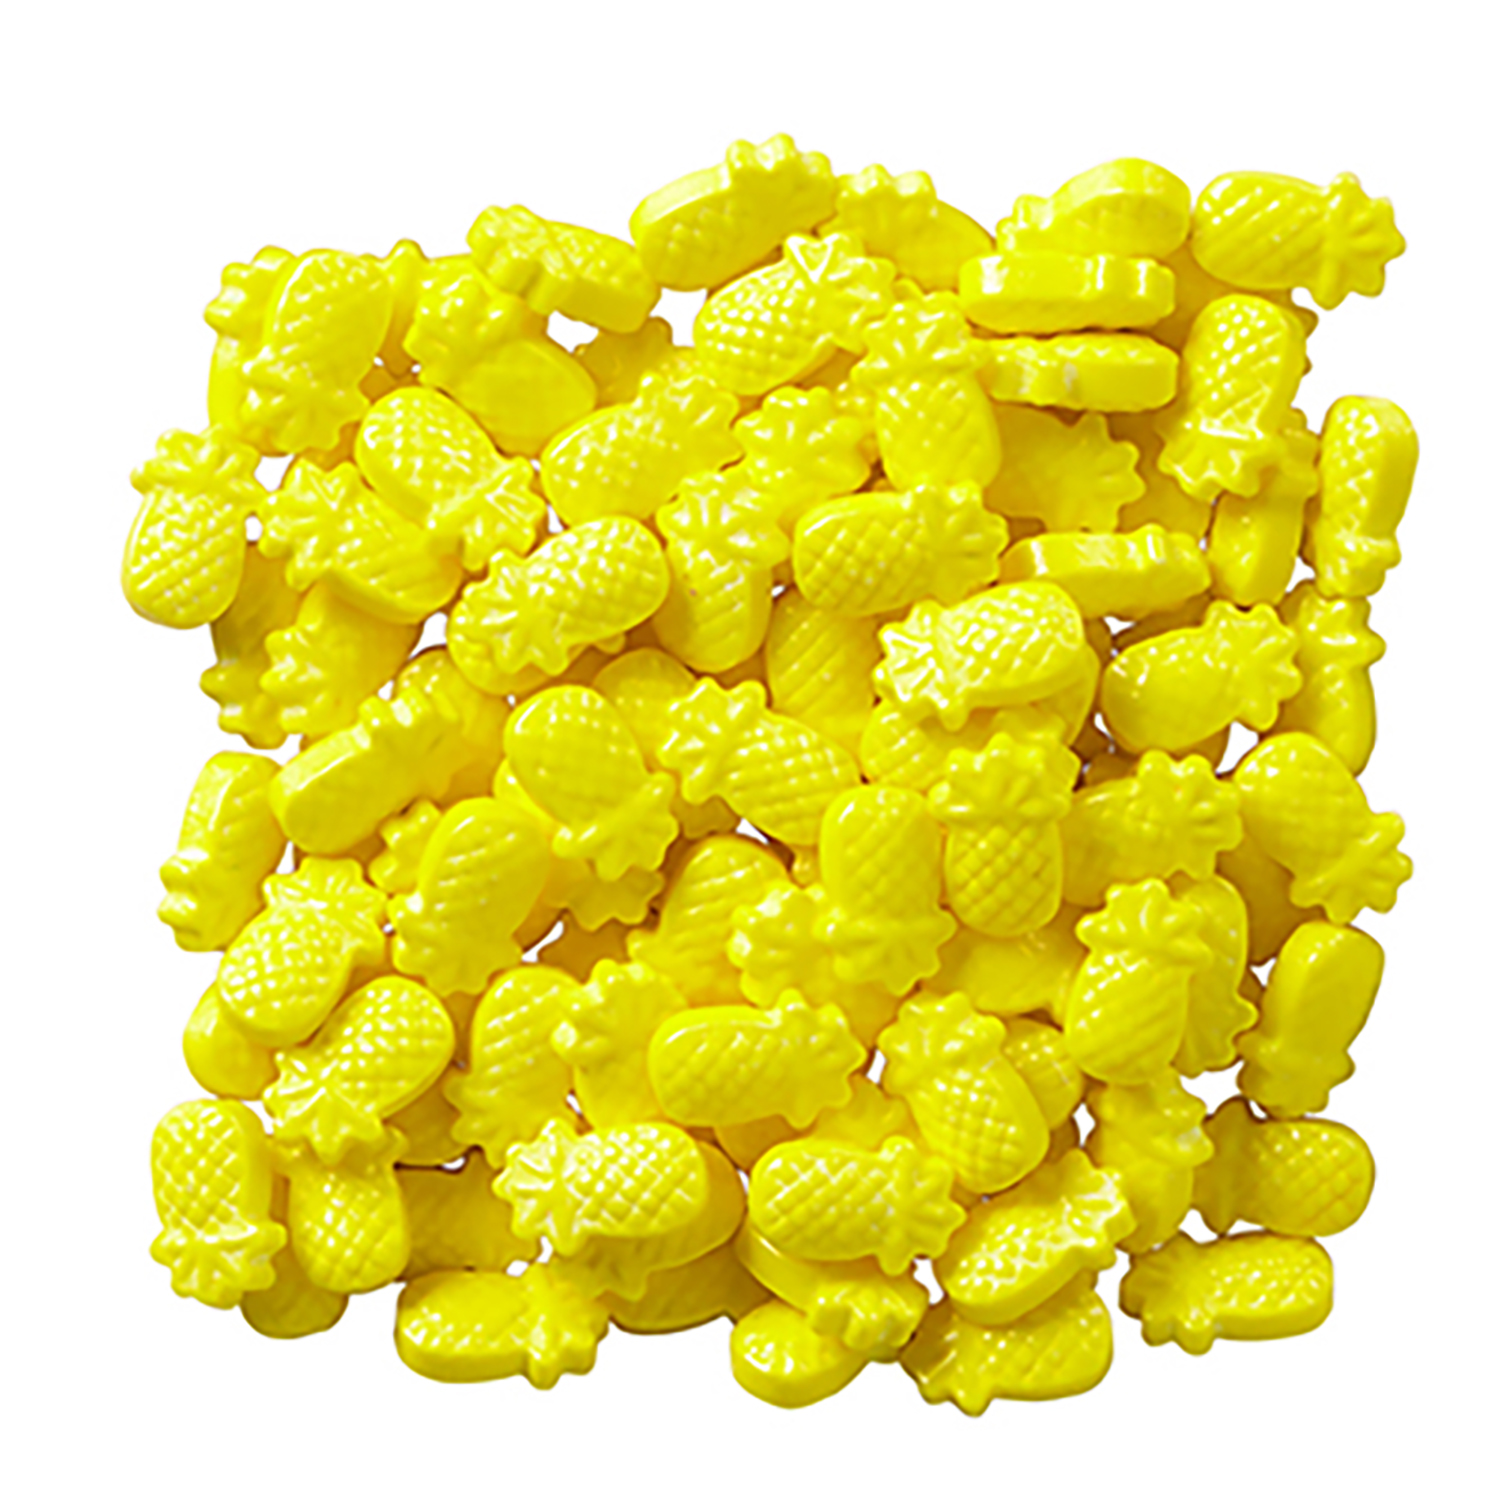 Wilton Sprinkles Pineapple - Yellow